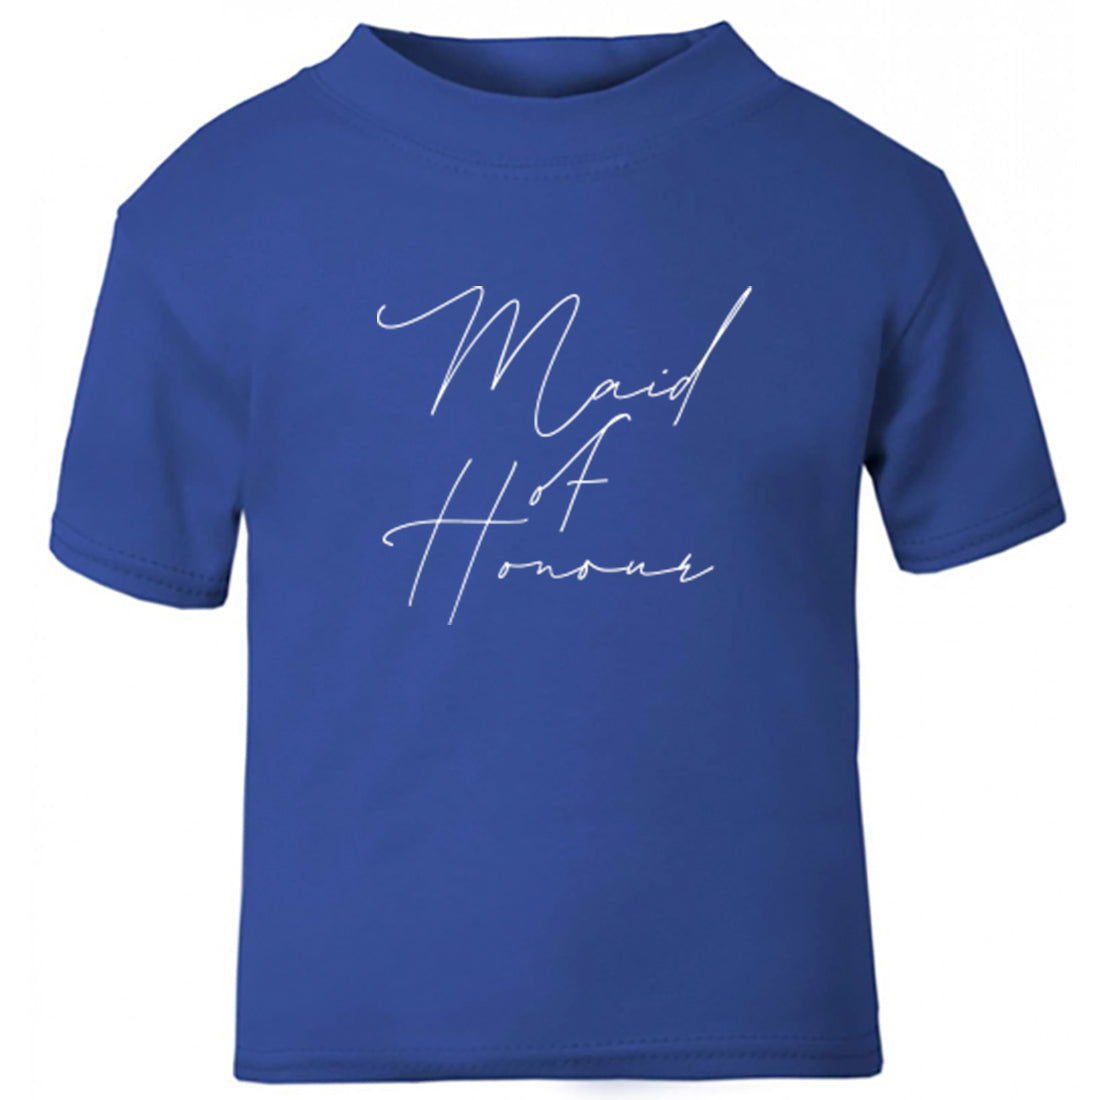 Maid Of Honour Childrens Ages 3/4-12/14 Unisex Fit T-Shirt K2374